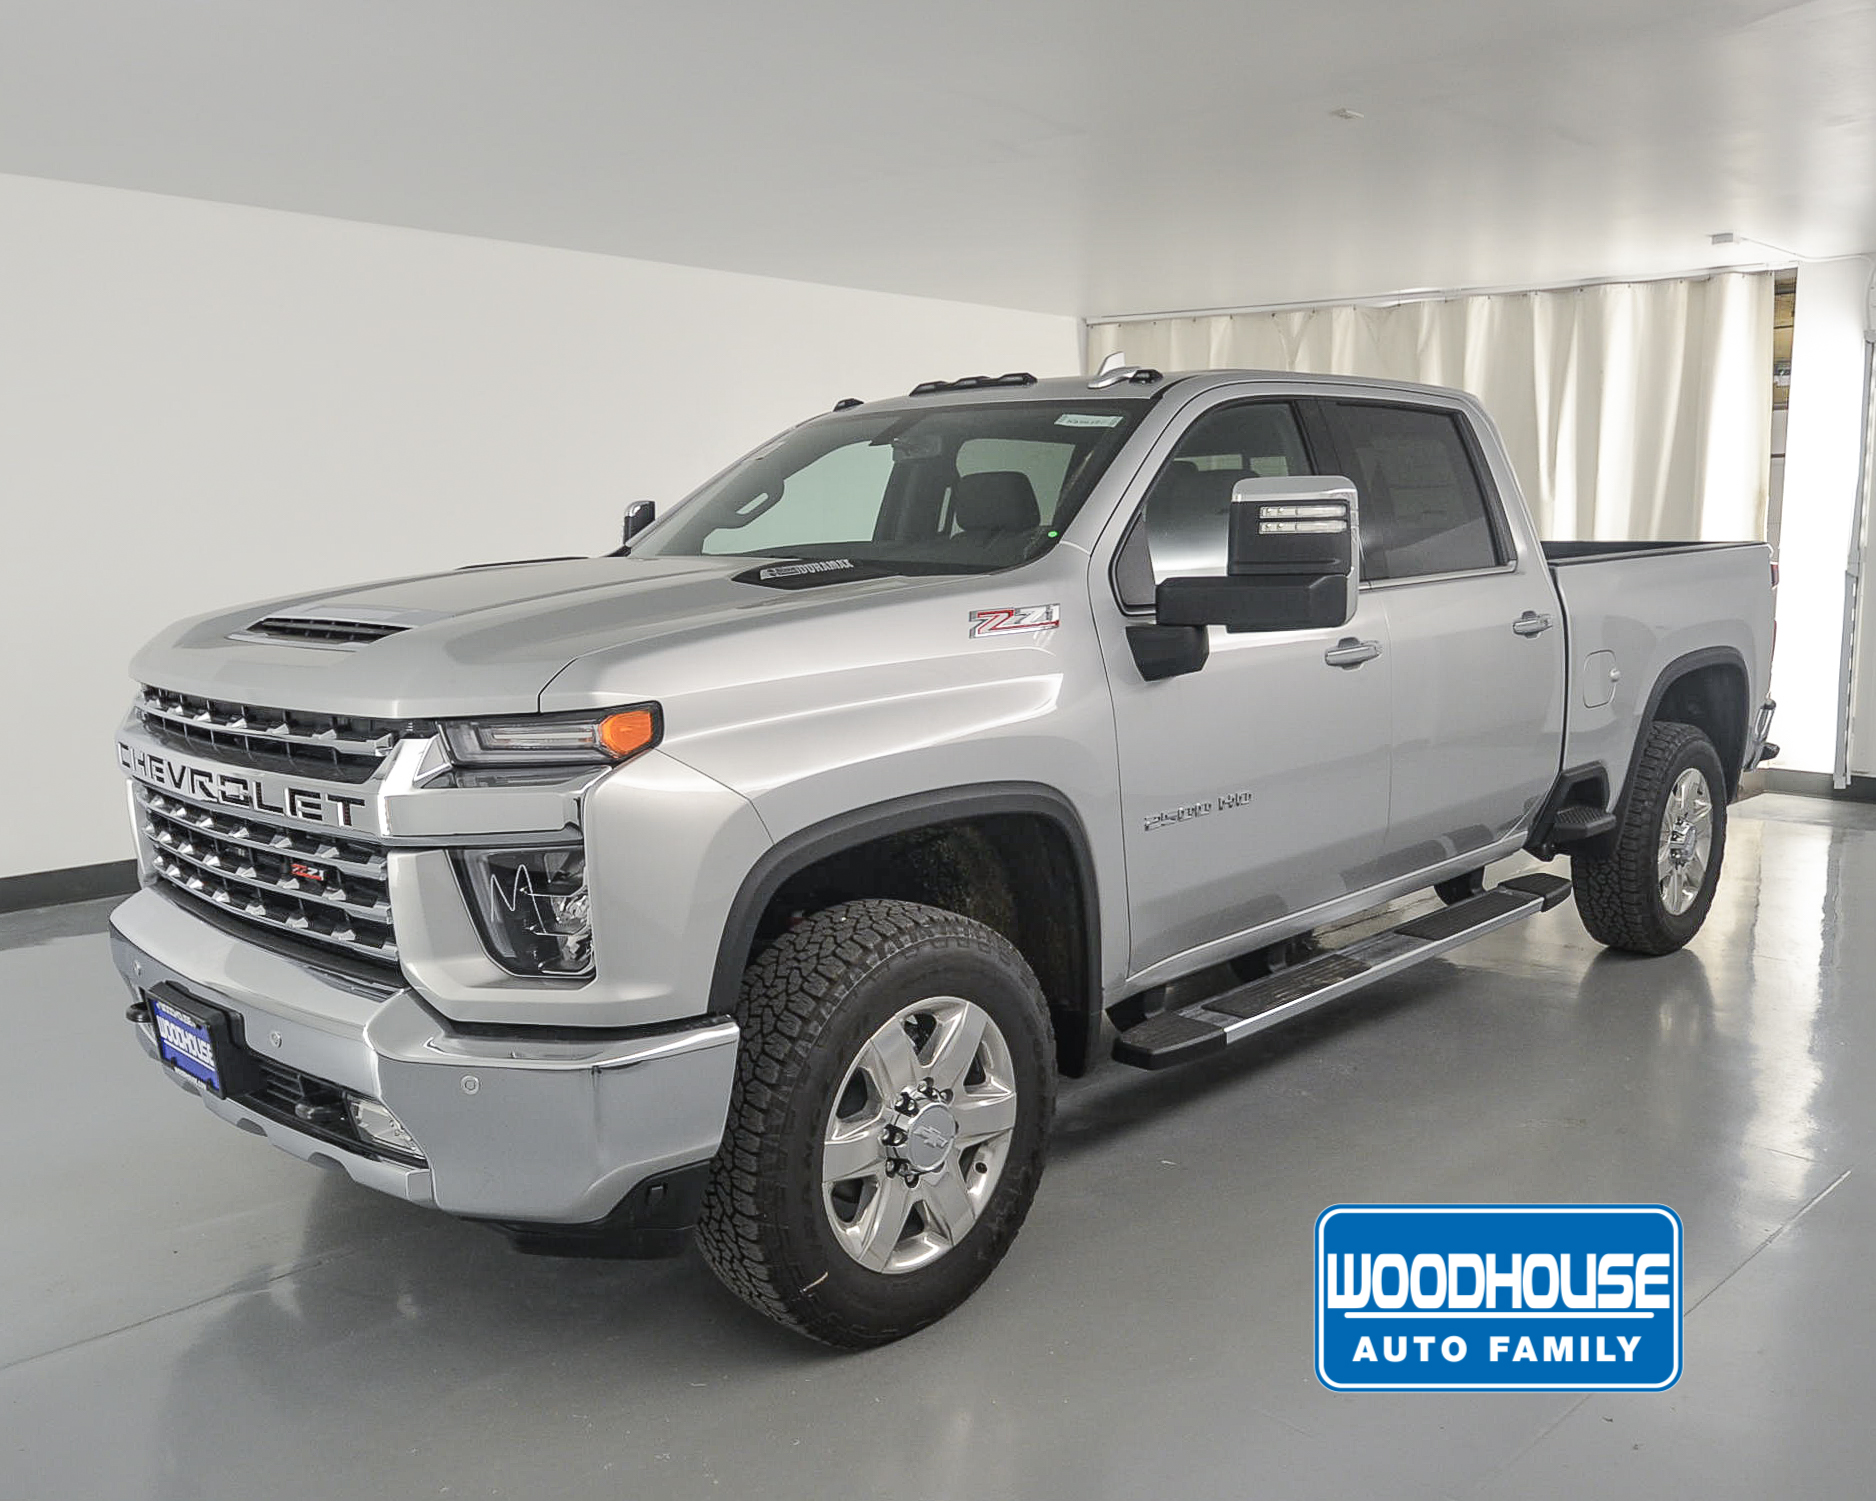 woodhouse new 2020 chevrolet silverado 2500 for sale chevy buick woodhouse